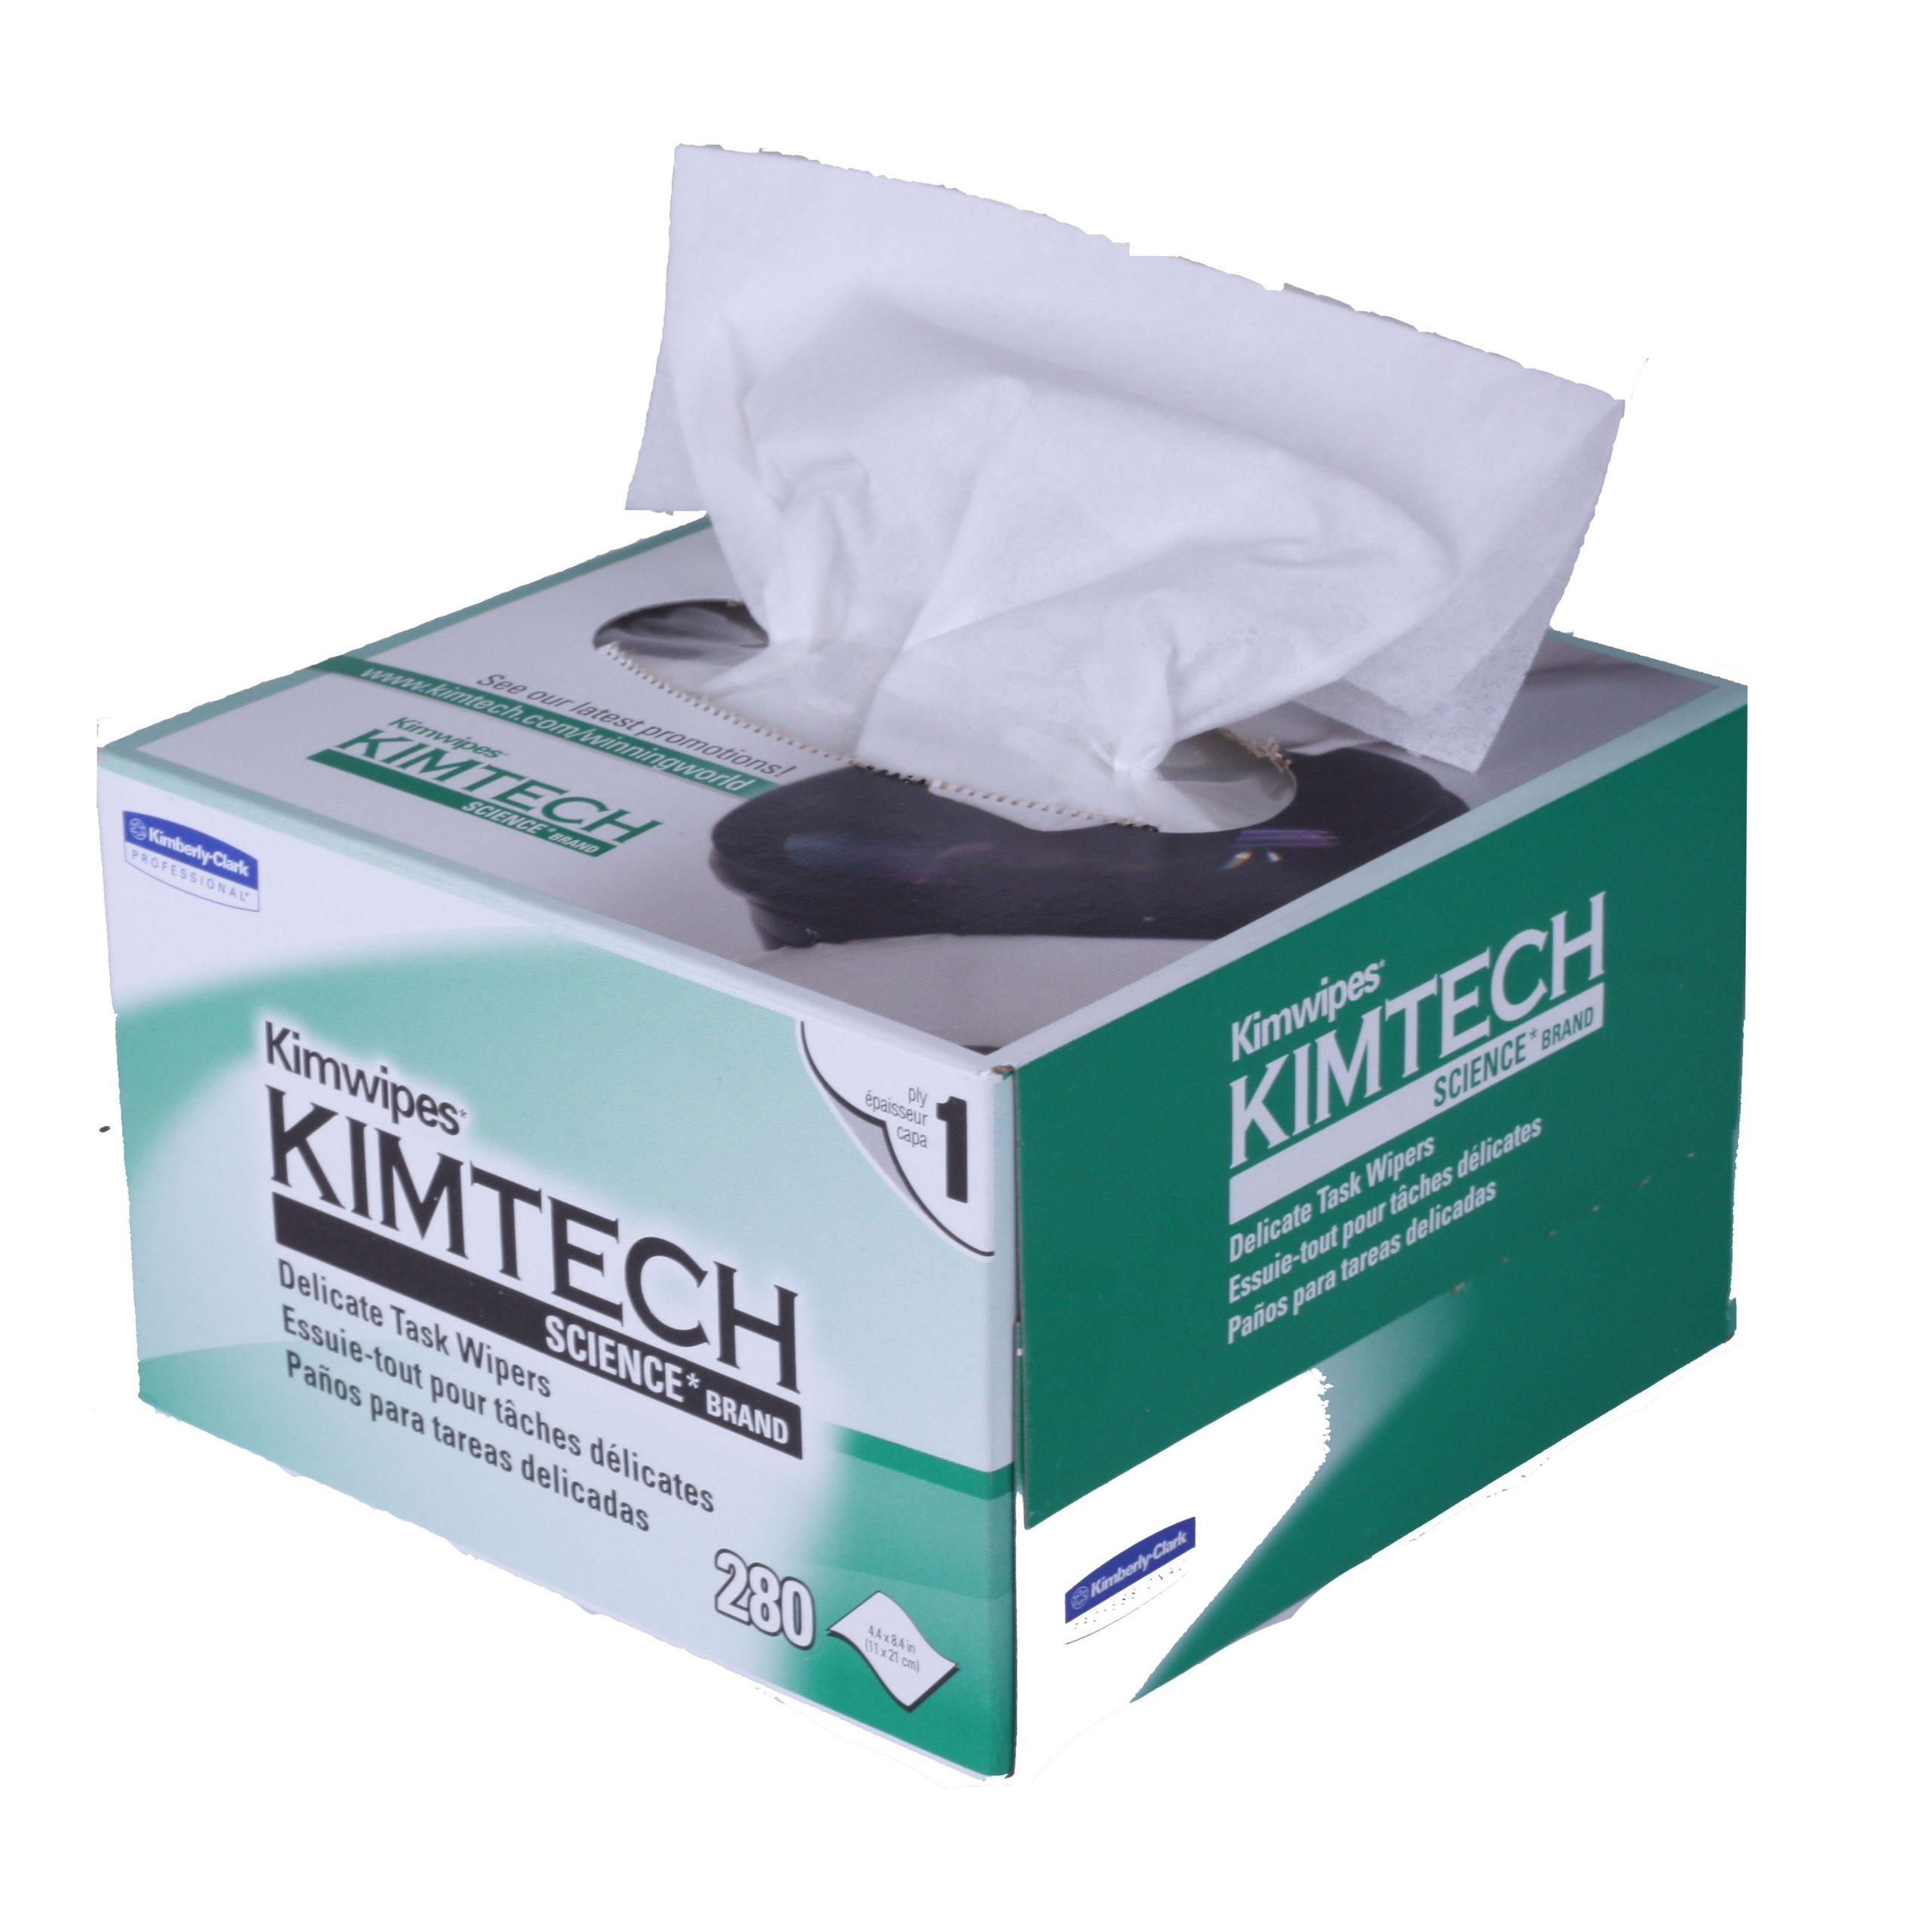 Case of Kimwipes EX-L (60 Boxes)